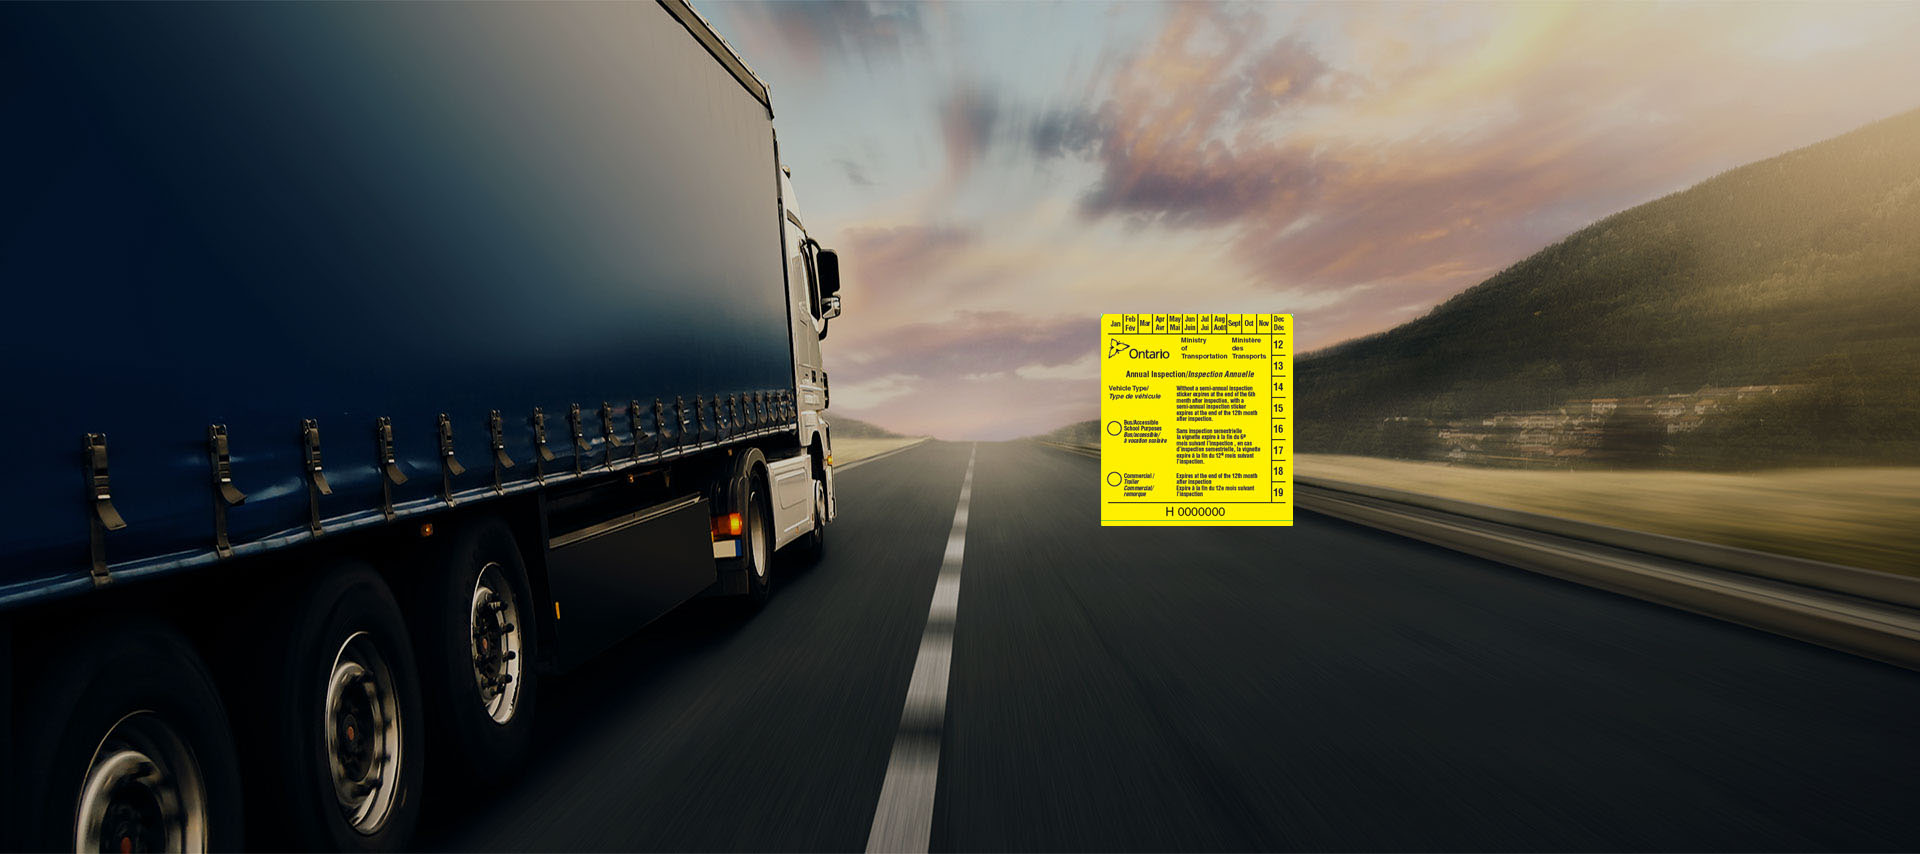 Annual Safety for Trucks, Trailers and Commercial Vehicles